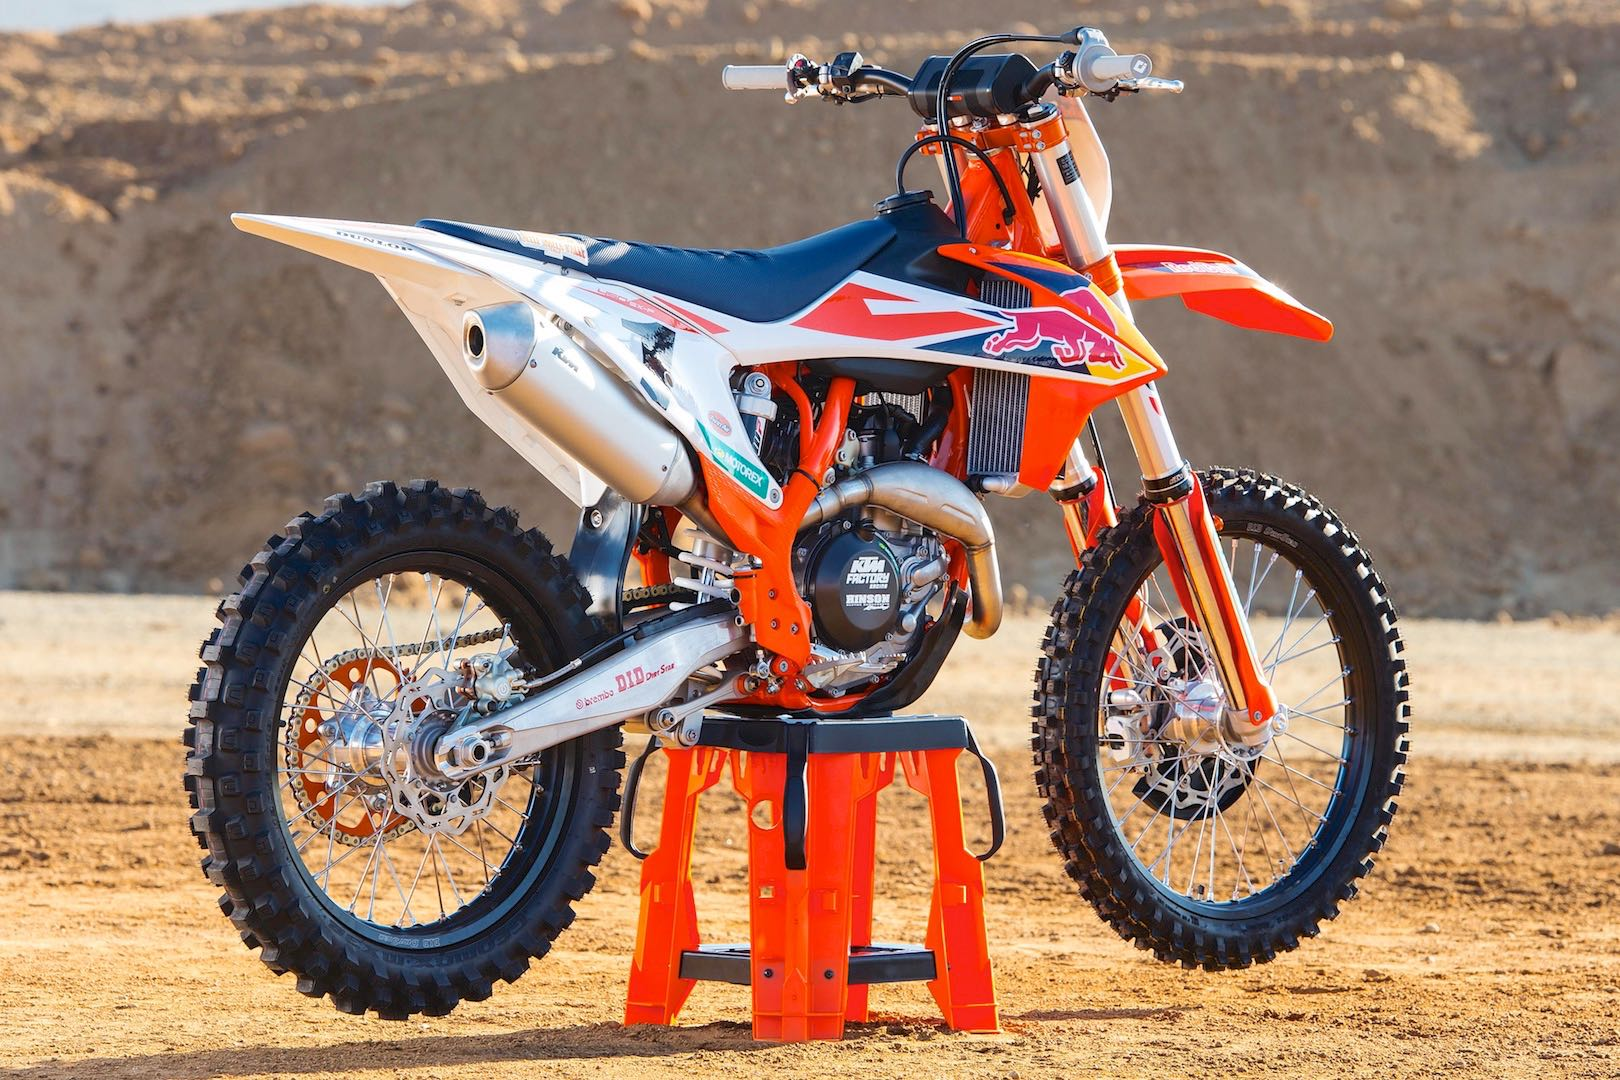 2018 Ktm 450 Sx F Factory Edition First Look 9 Fast Facts